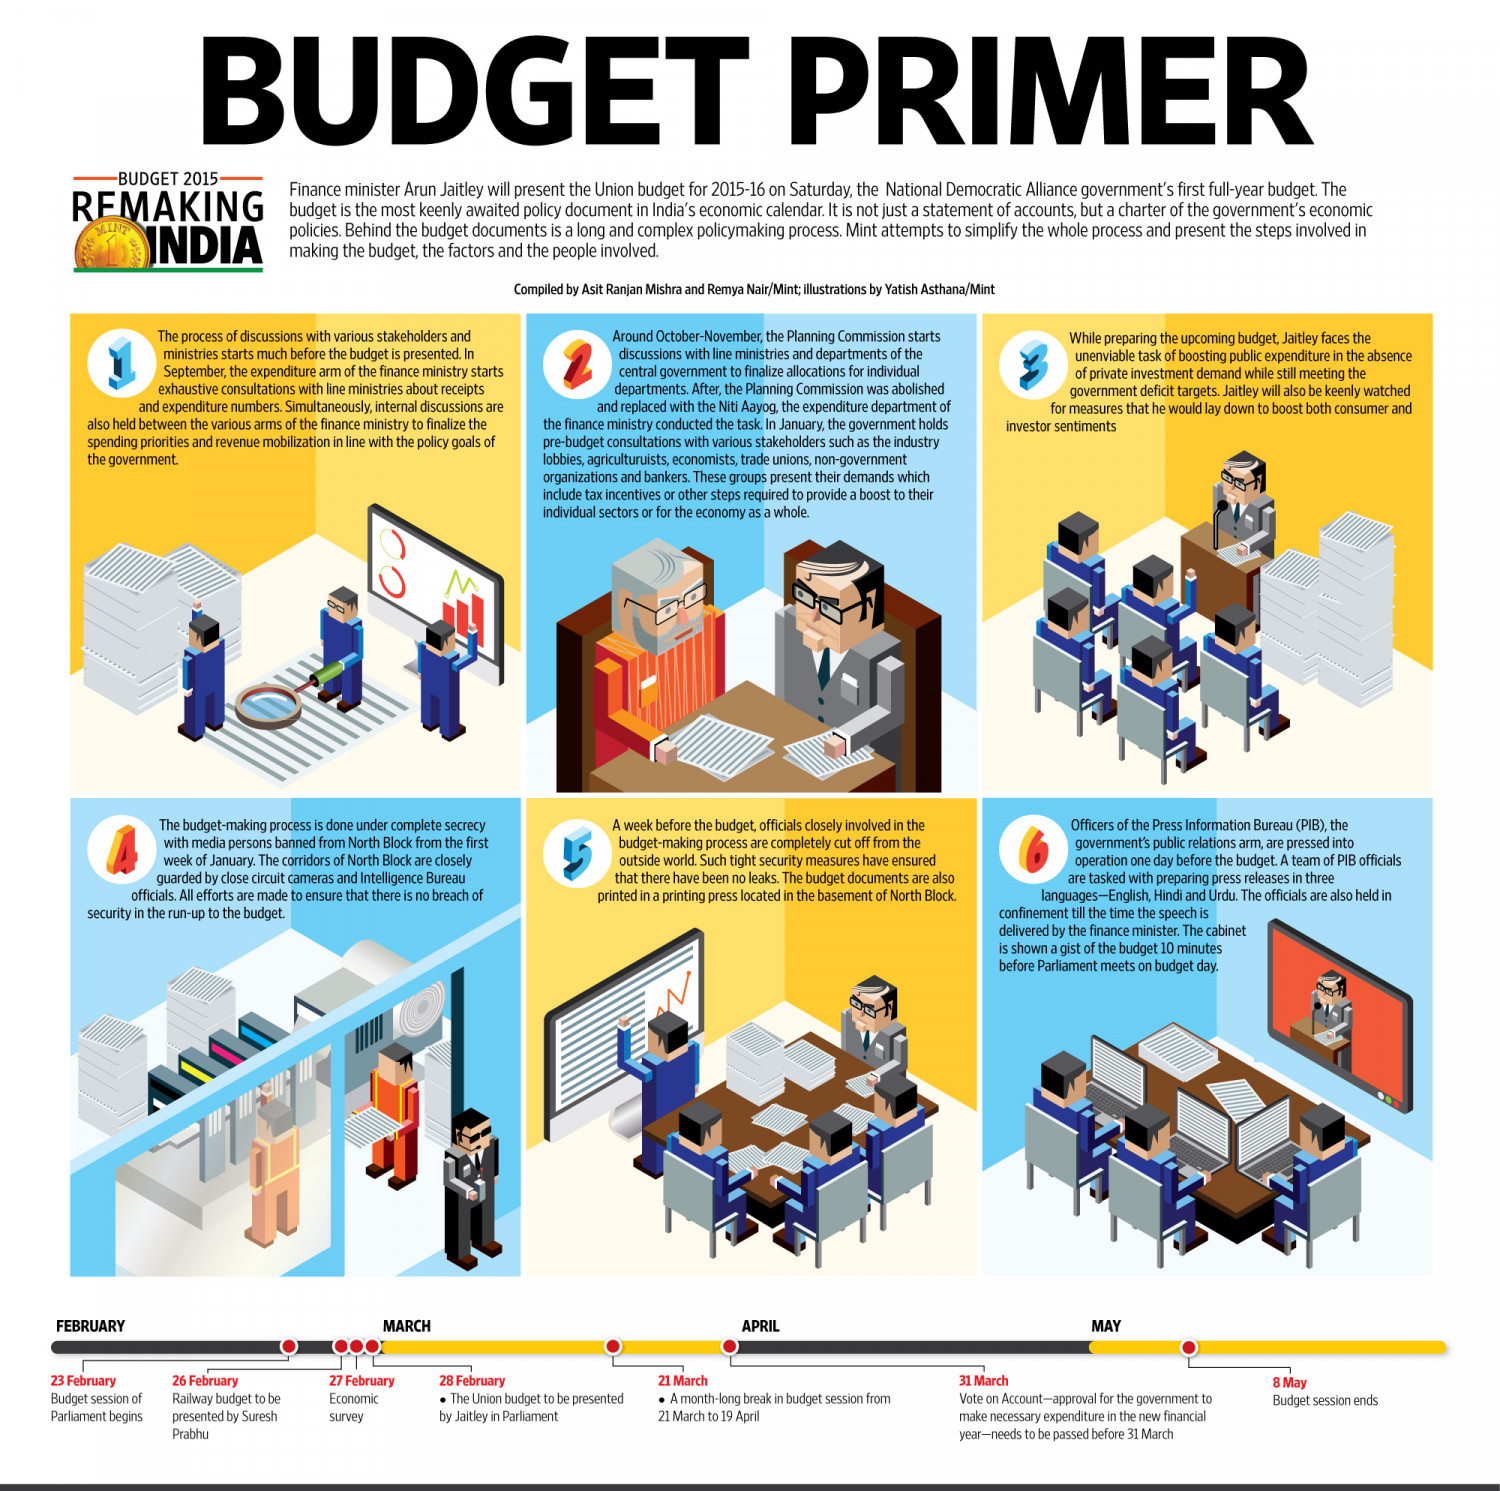 BUDGET PRIMER Infographic